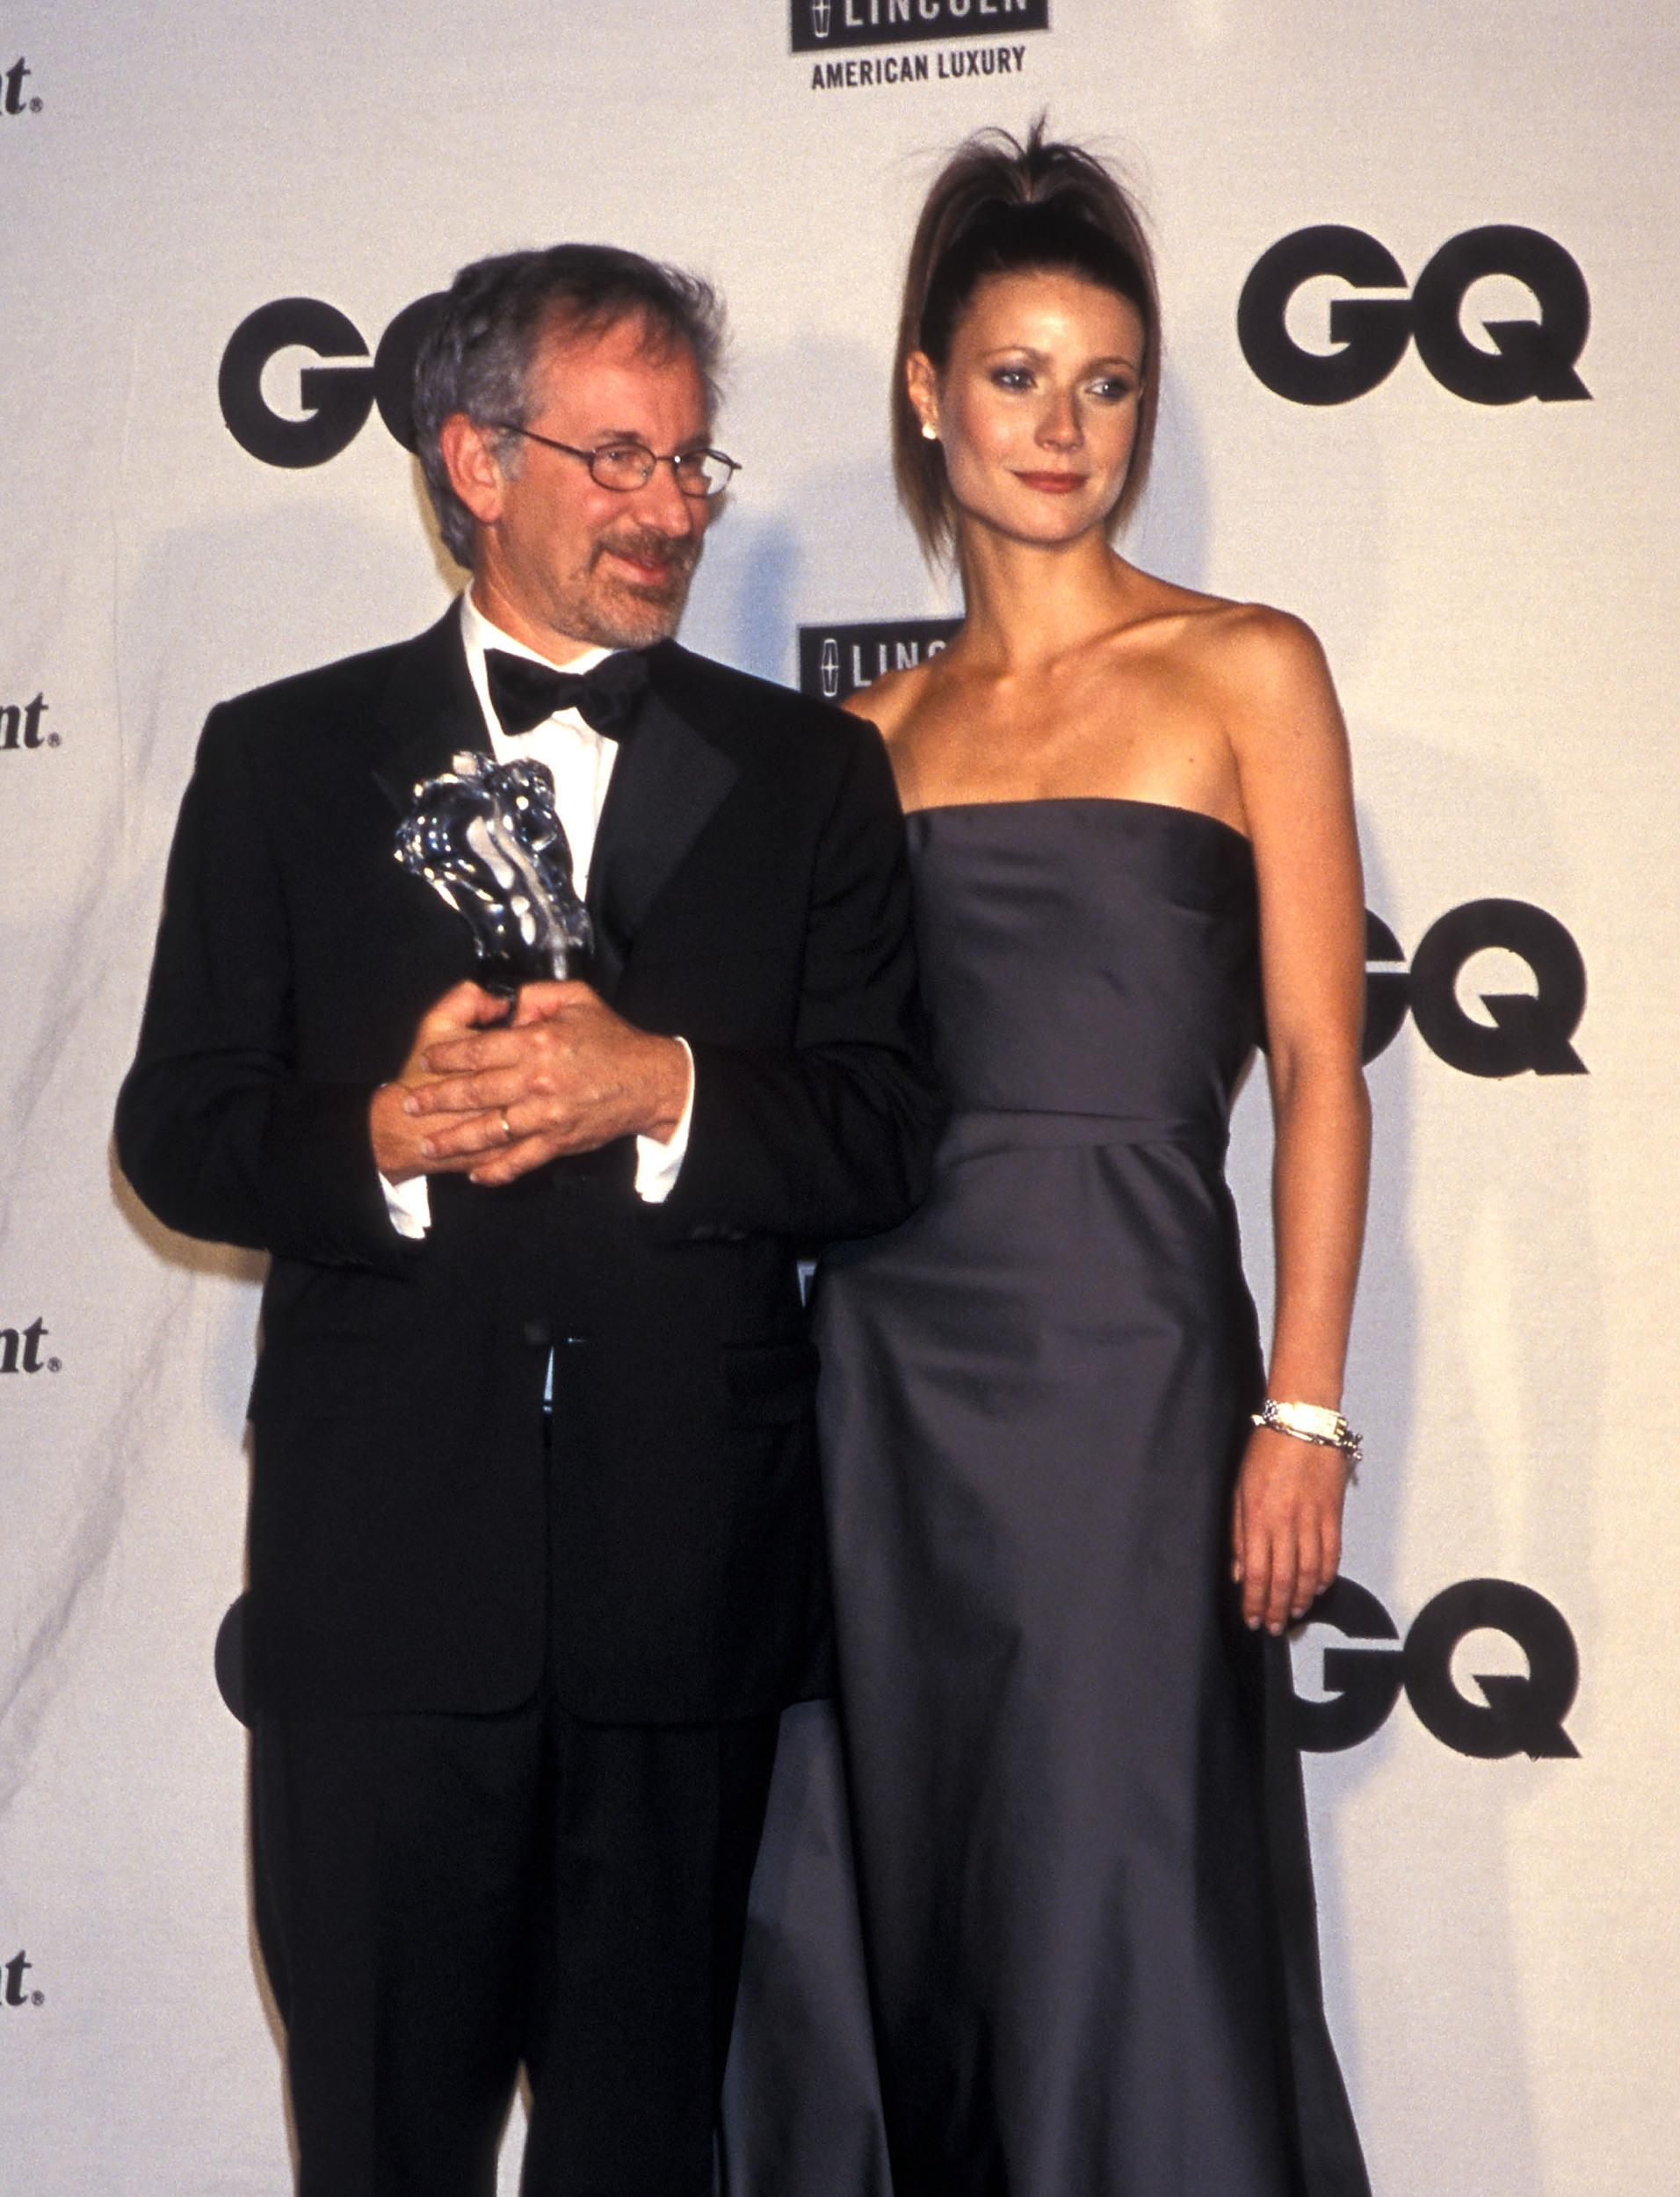 Director/Producer Steven Spielberg and actress Gwyneth Paltrow attend the Fourth Annual GQ Men of the Year Awards on October 21, 1999 at the Beacon Theater in New York City. (Photo by Ron Galella, Ltd./WireImage)